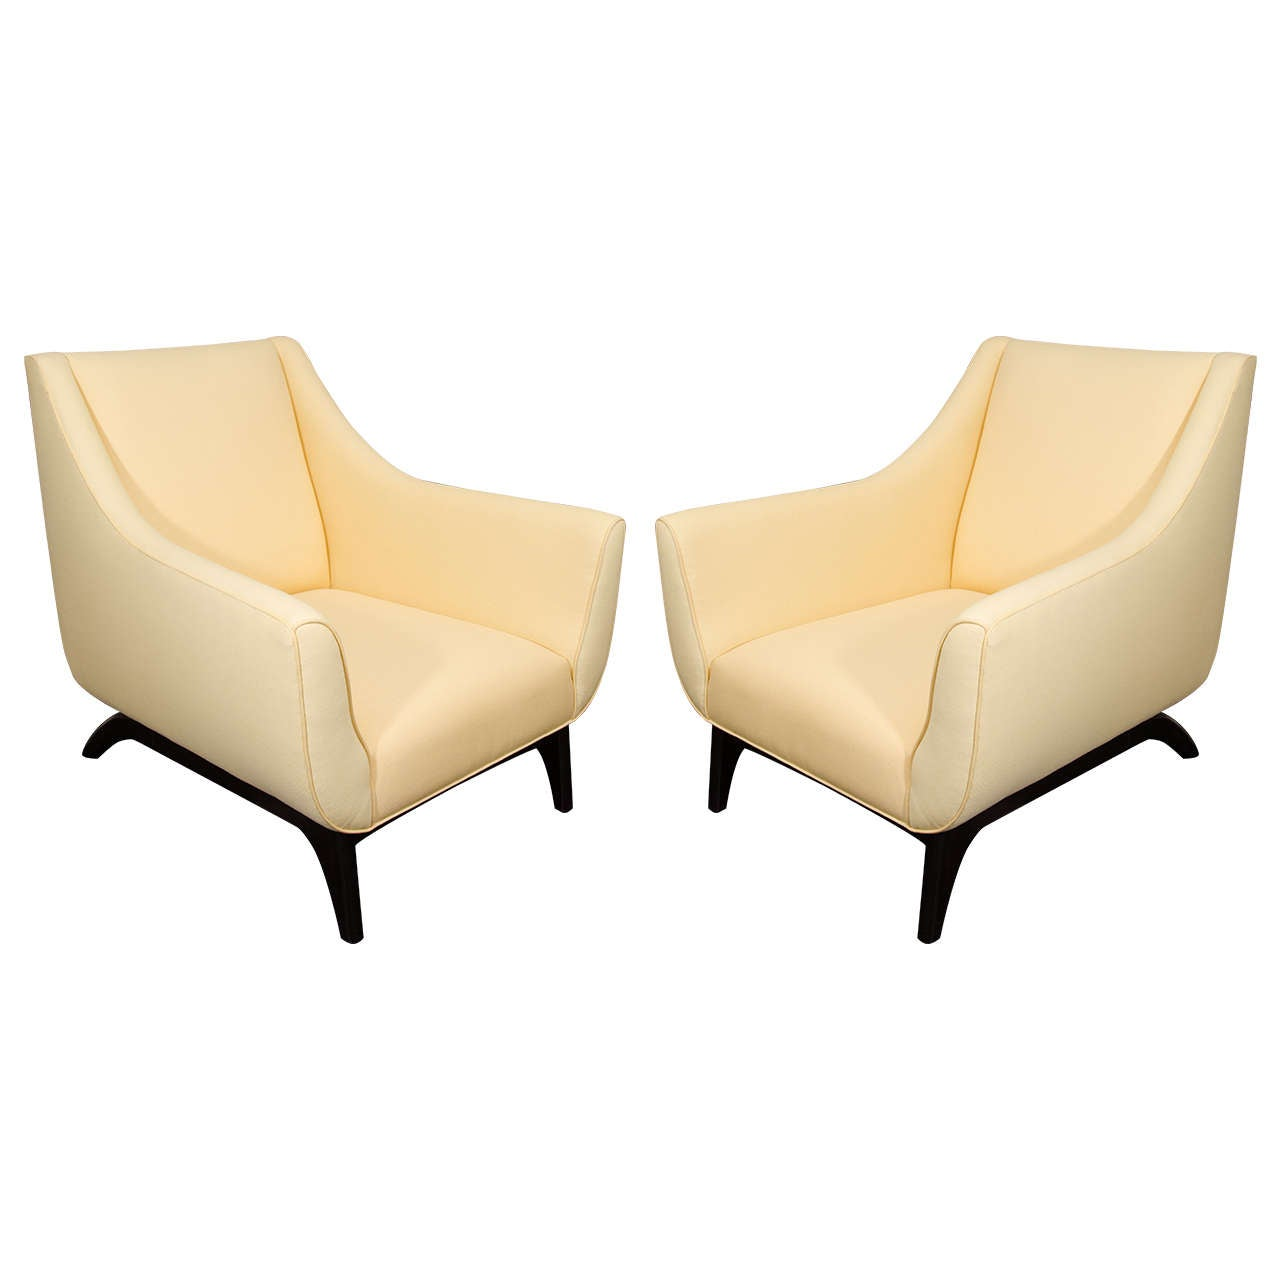 Pair of 1950s American Chairs